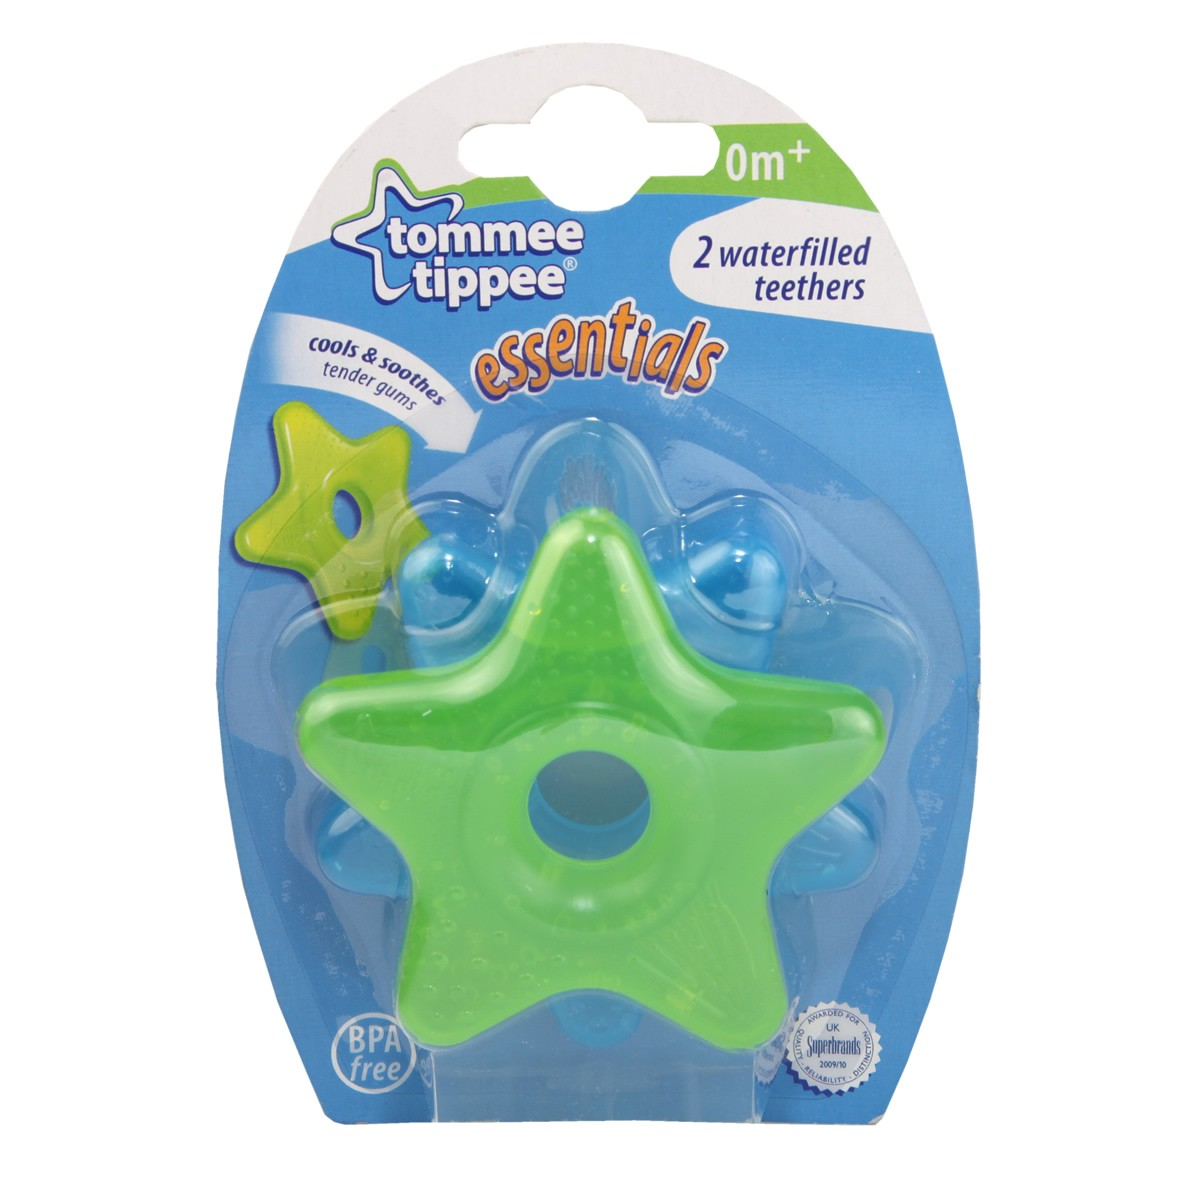 Tommee Tippee Essentials 2 Waterfilled Teethers (0m+)